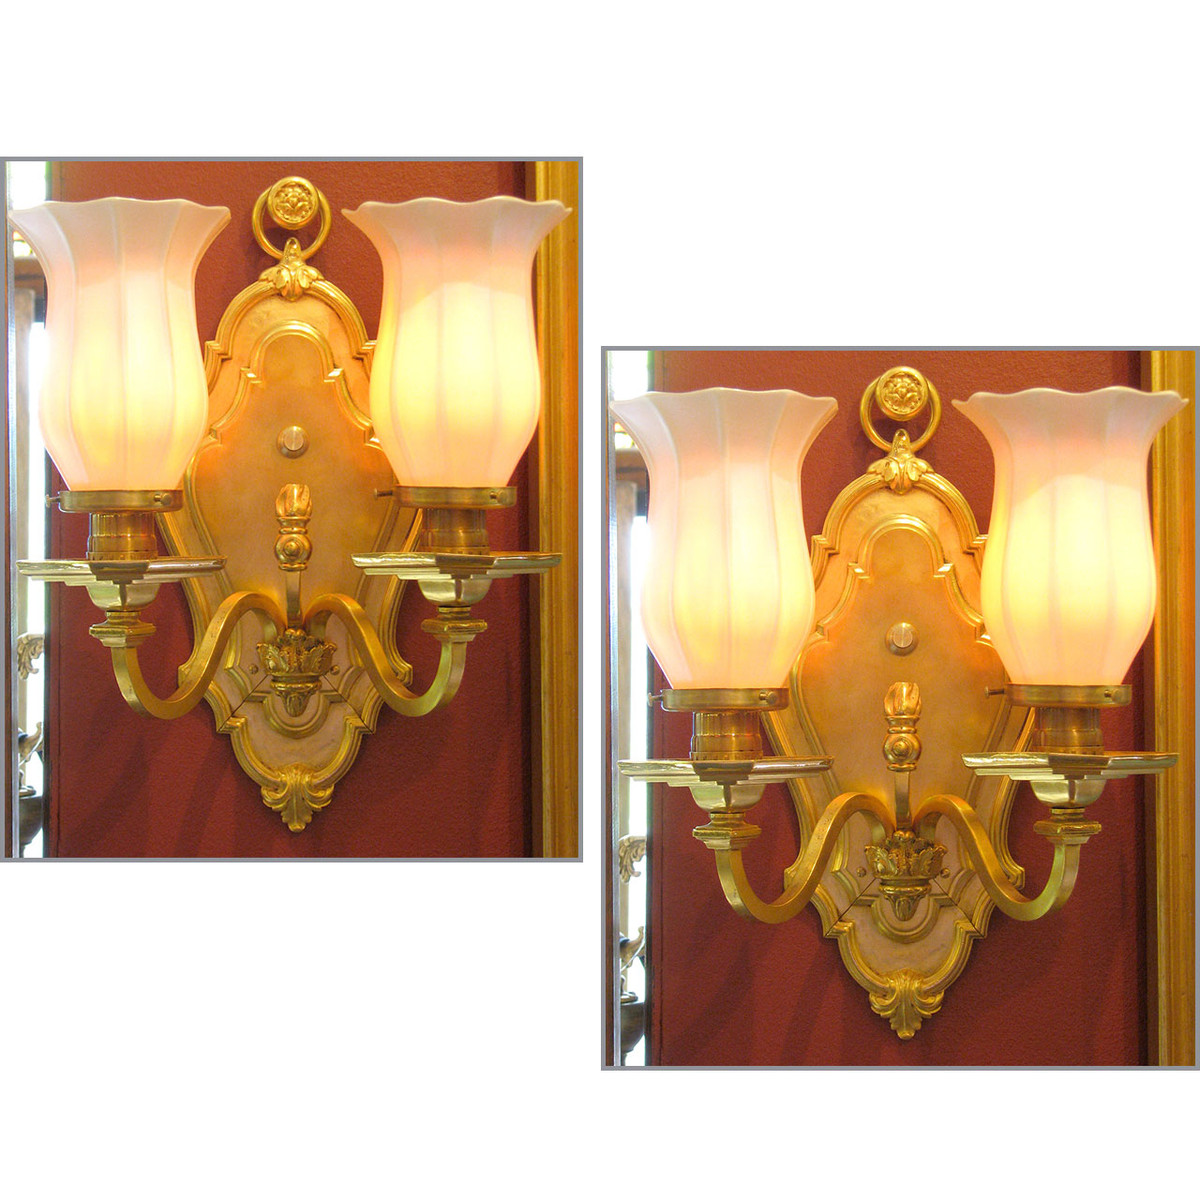 L12119 - Pair of Antique Double Arm Wall Sconces with Art Glass